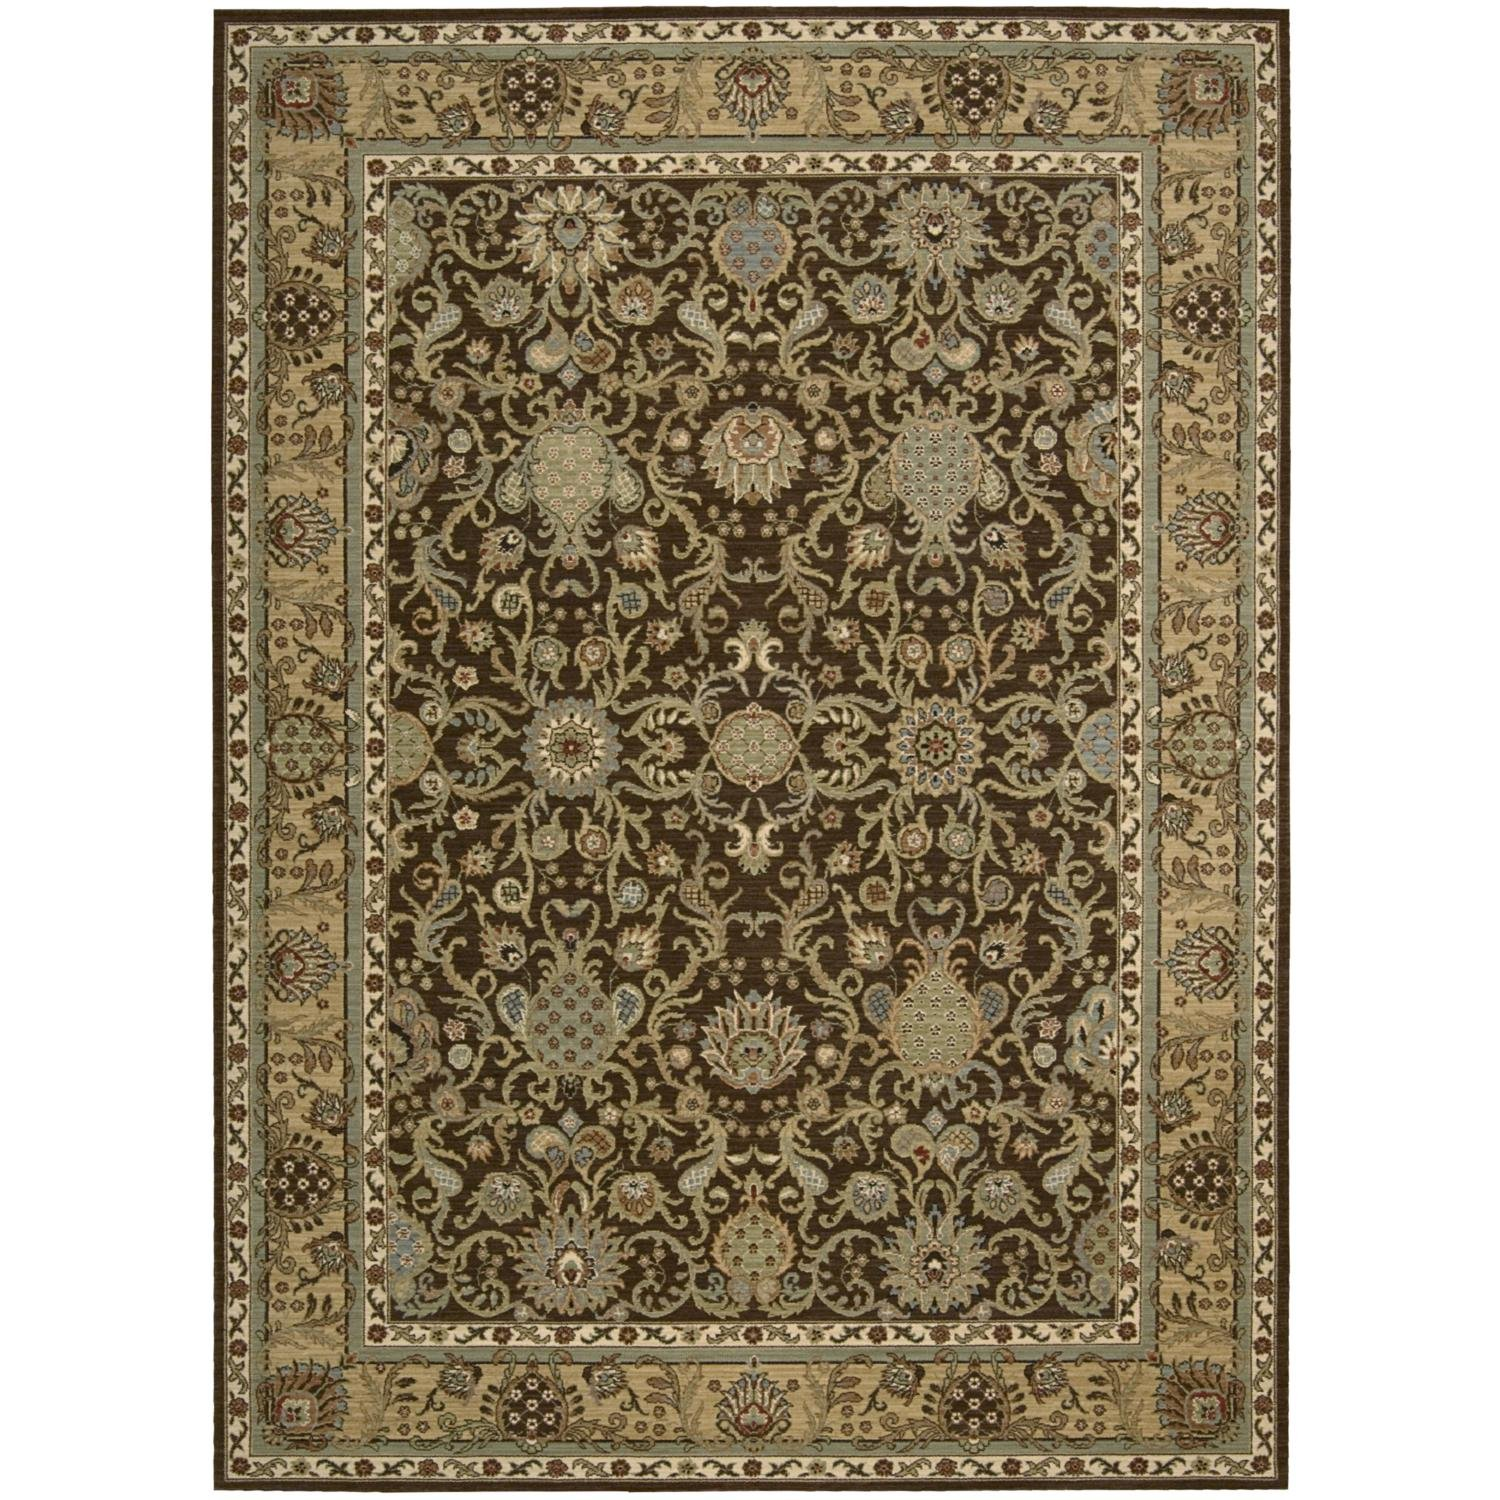 Contemporary Area Rugs Home Decor Decorating Necessities